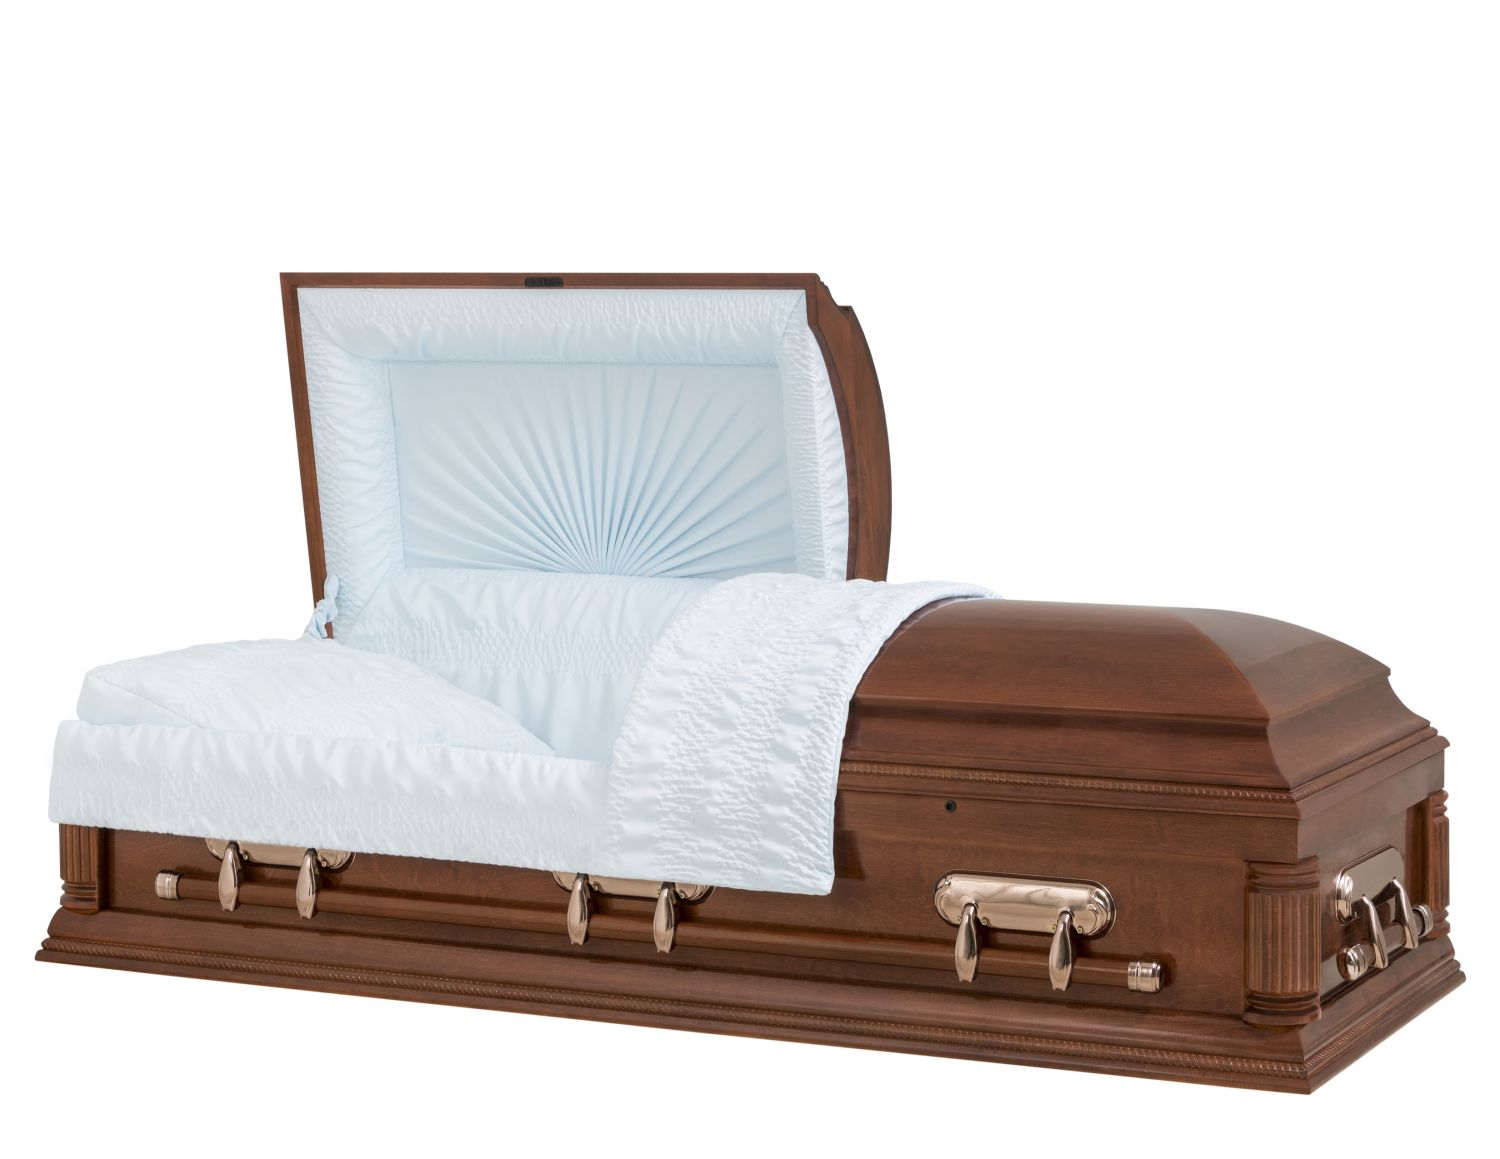 Concept Caskets 18204-00900-N POPLAR CASKET GLOSS CREPE CHERRY ADJUSTABLE BED YES H2110-1    3 X 1 COPPER